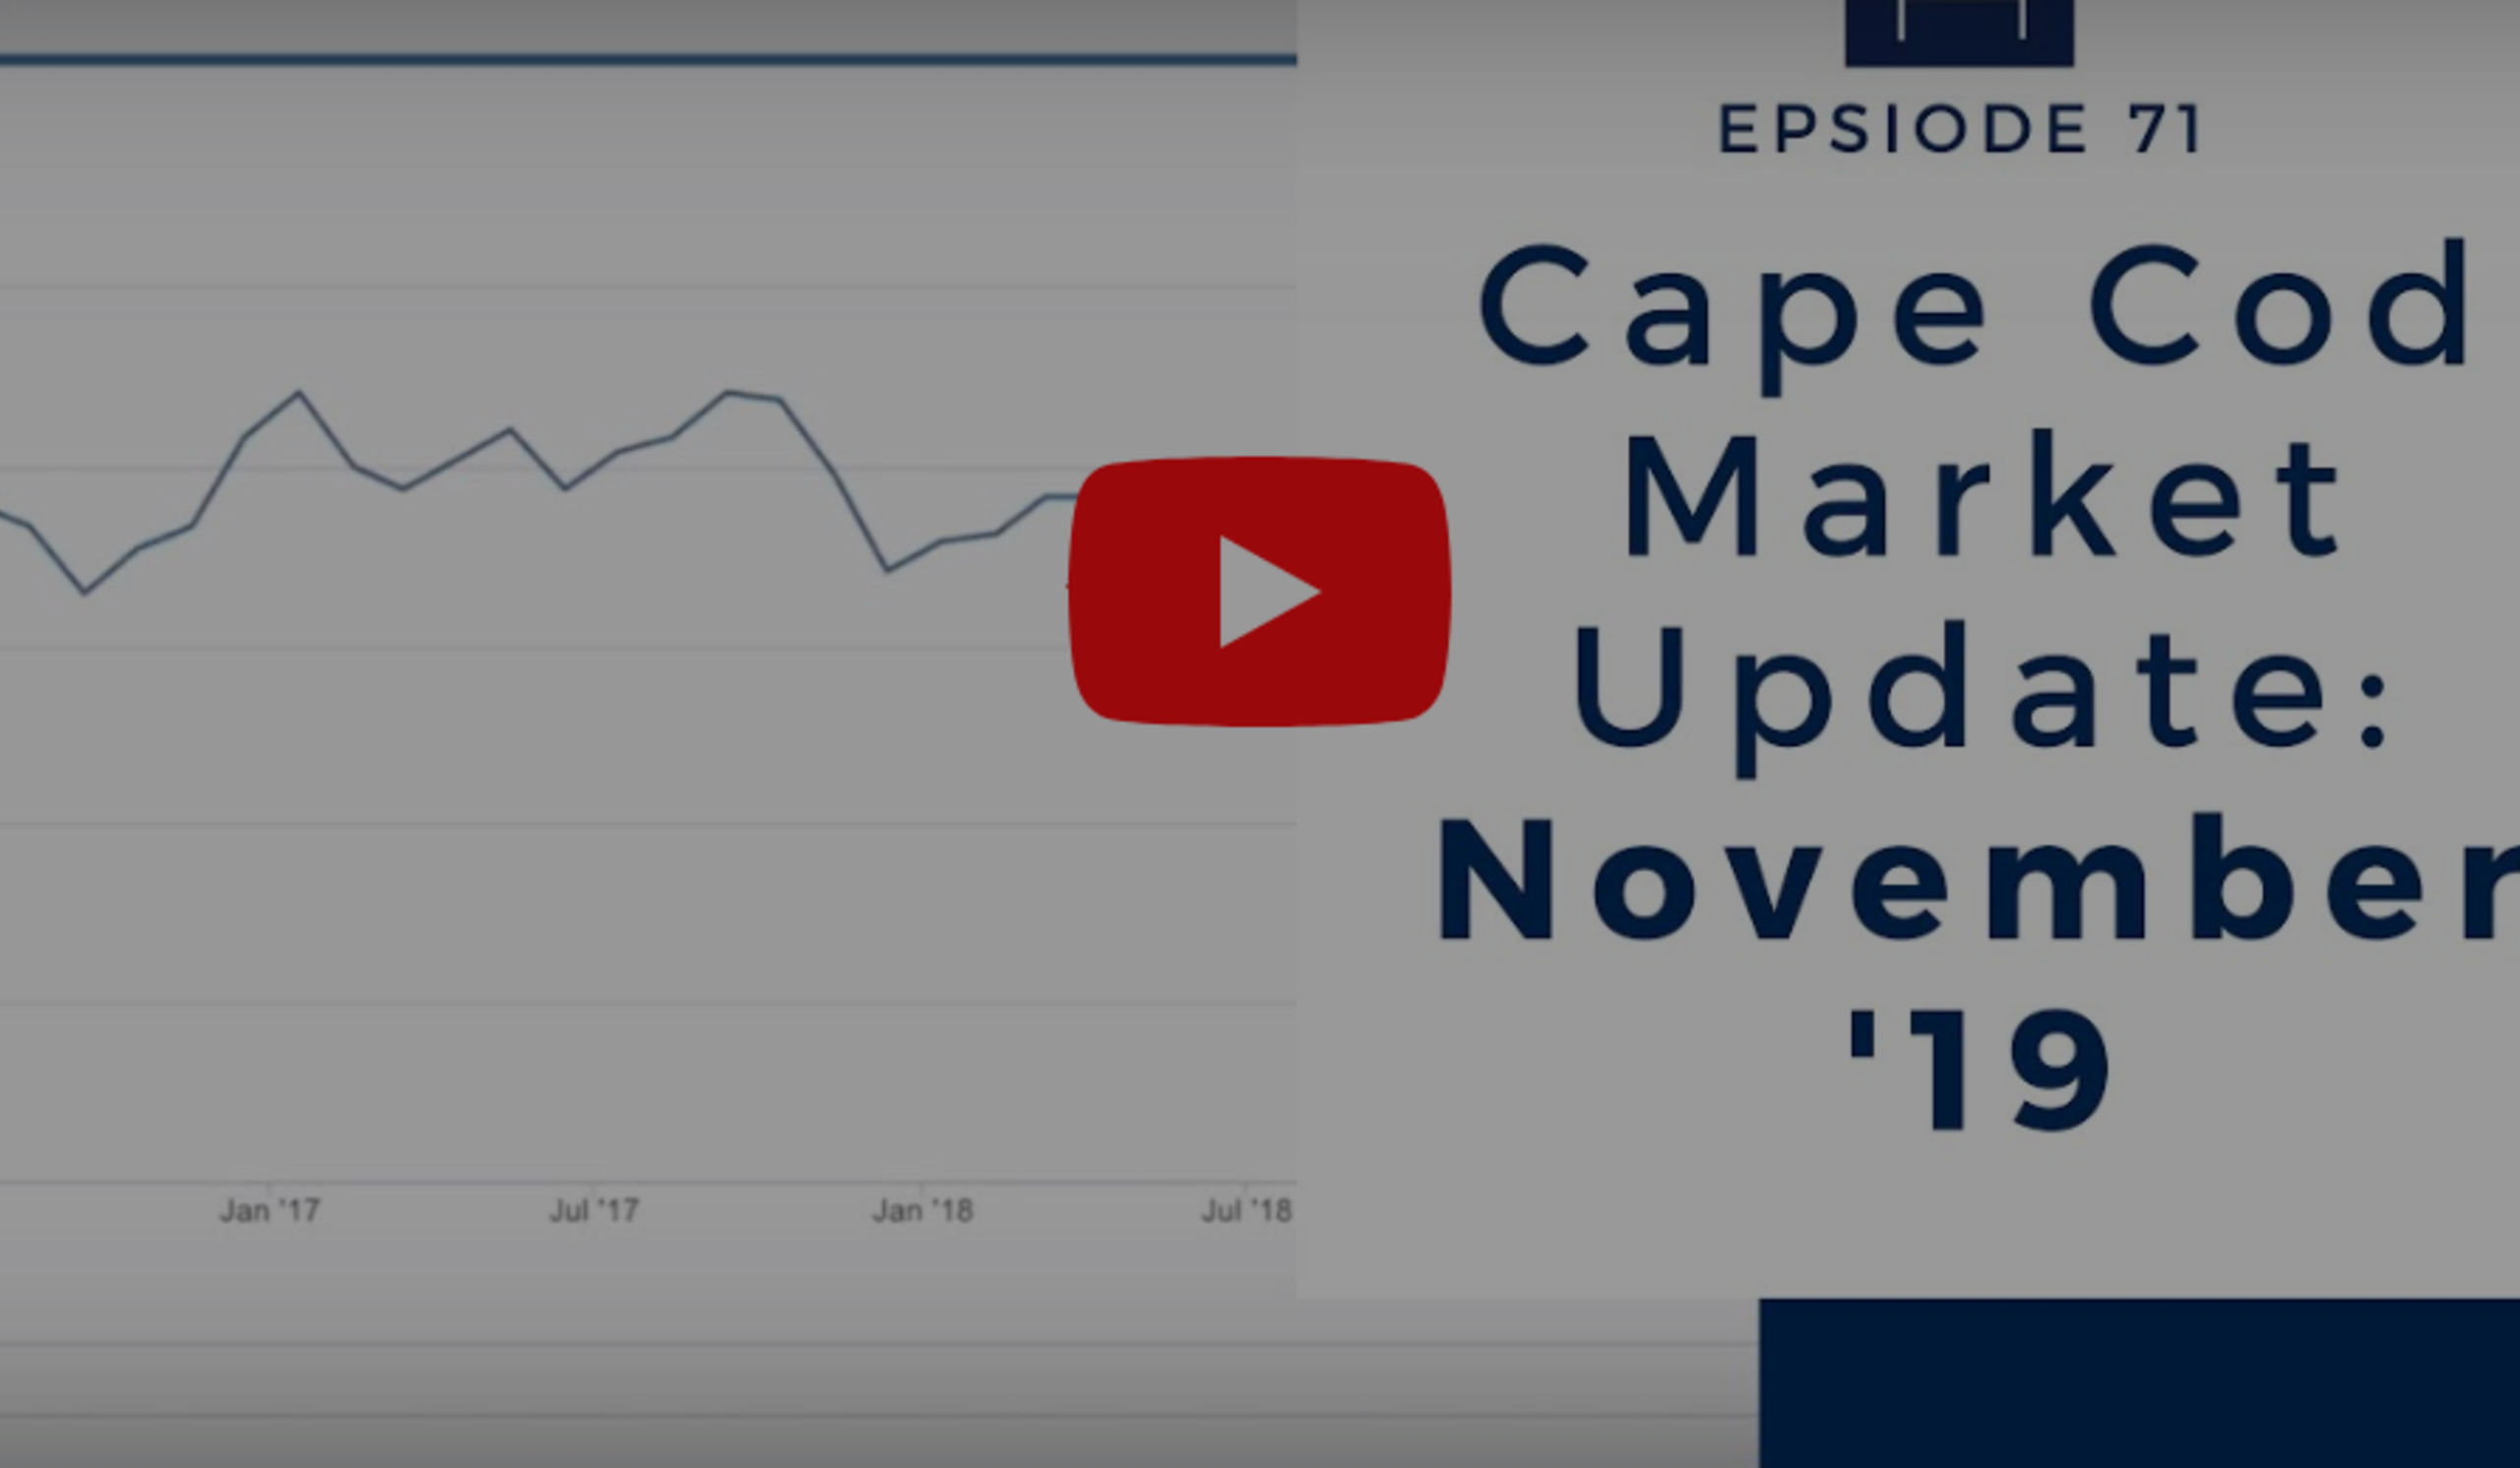 Episode 70: Cape Cod Market Update: November '19